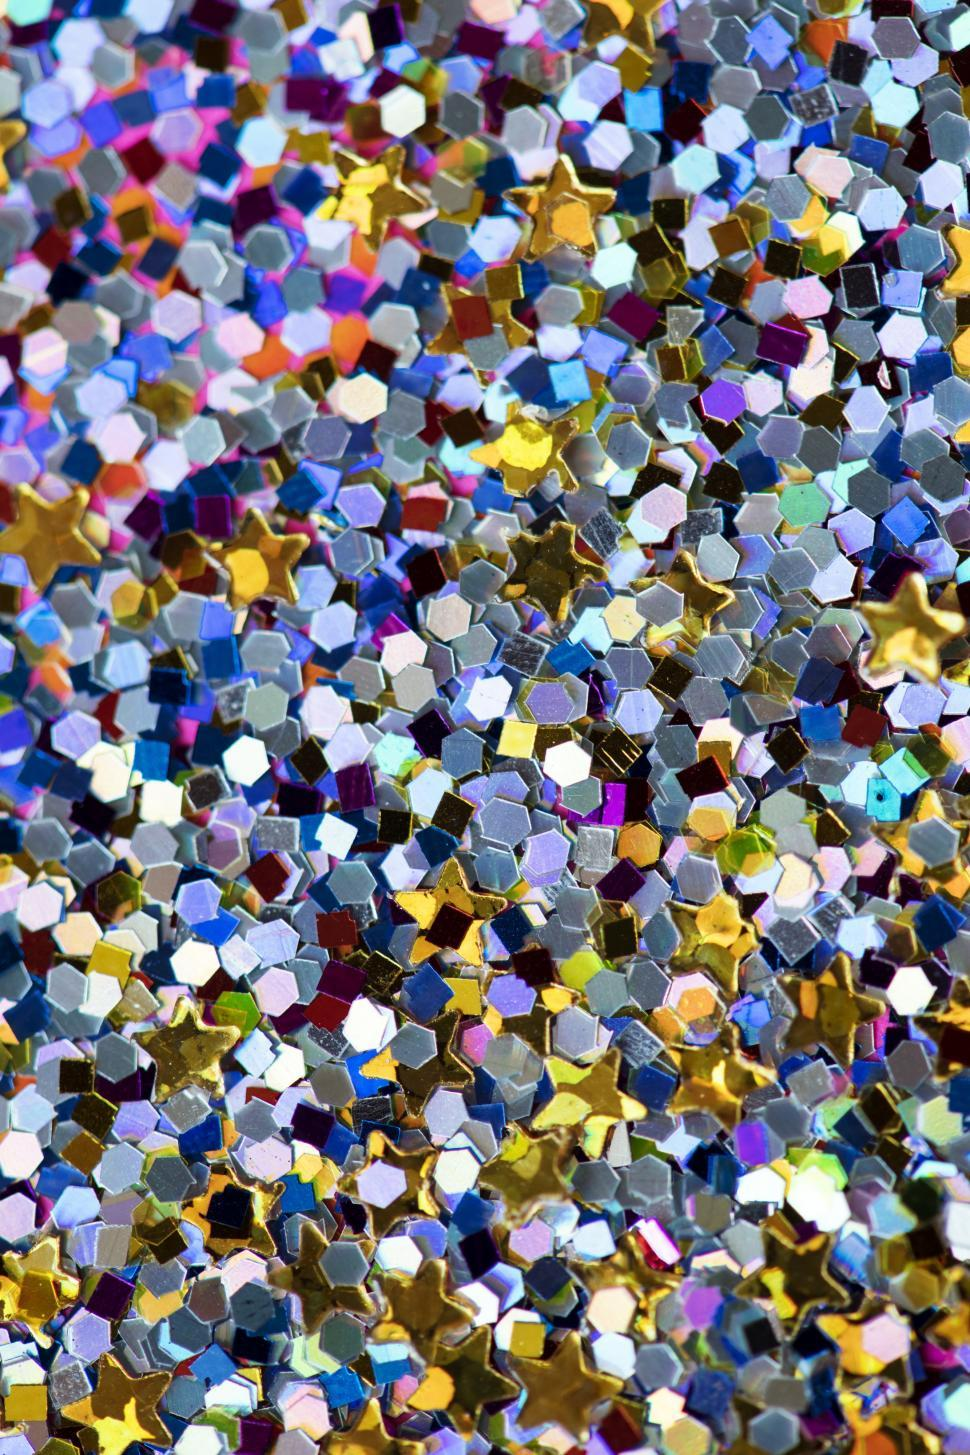 Download Free Stock HD Photo of Blue, yellow and violet hexagonal and star shaped glass glitter sparkles Online